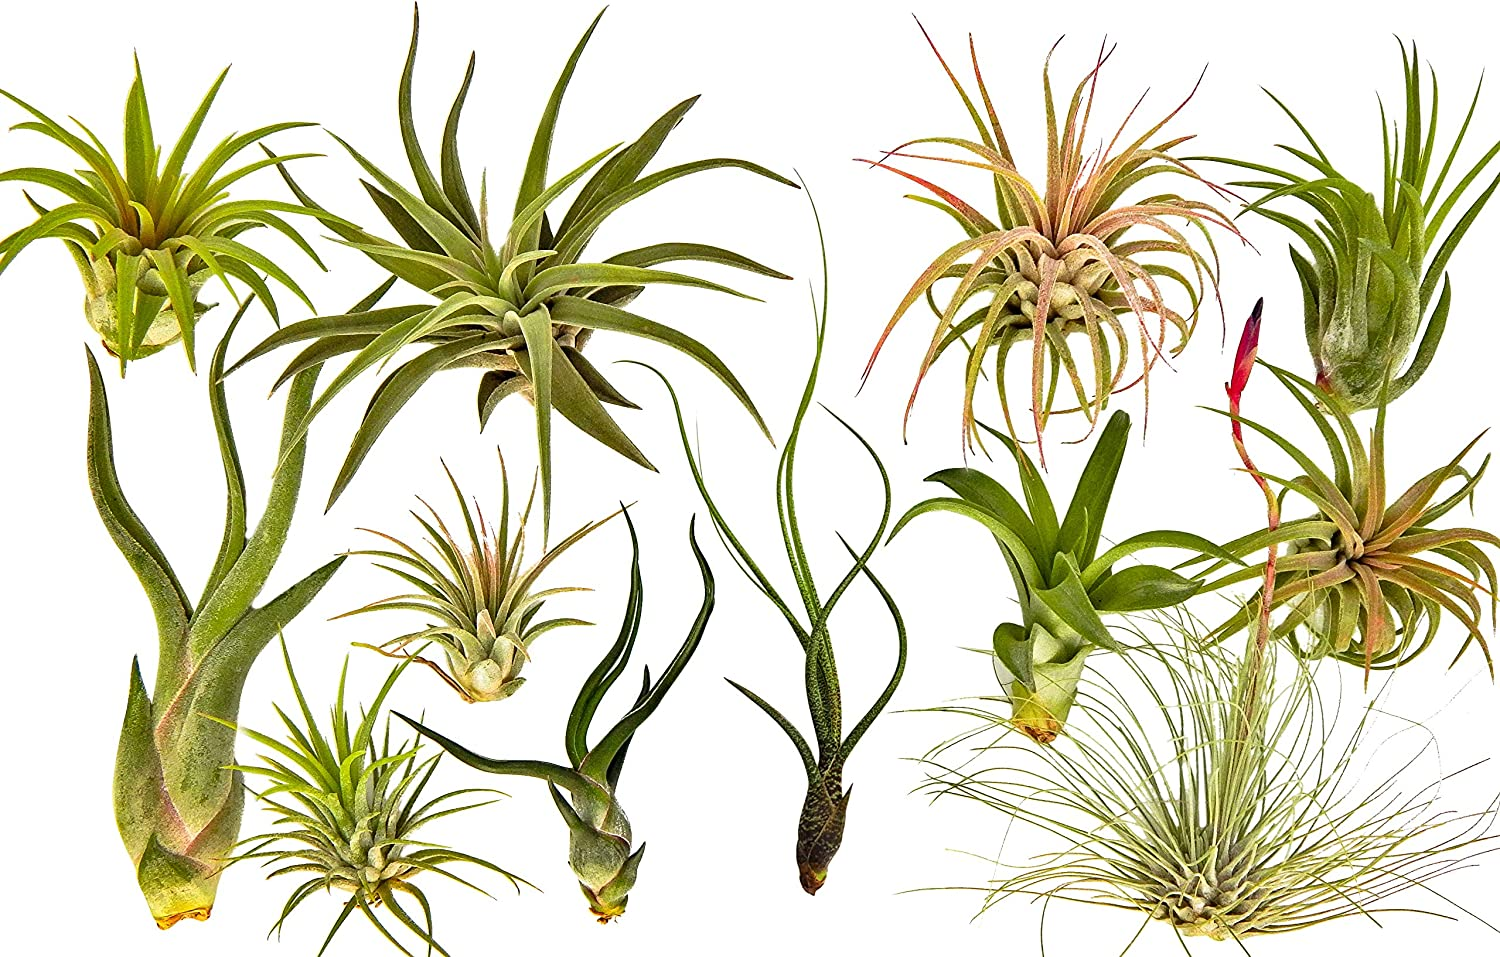 12 pc Air Plant Tillandsia Starter Set by Bliss Gardens - 12 Live House Plants - Great for Terrariums, Planters, Home Decor